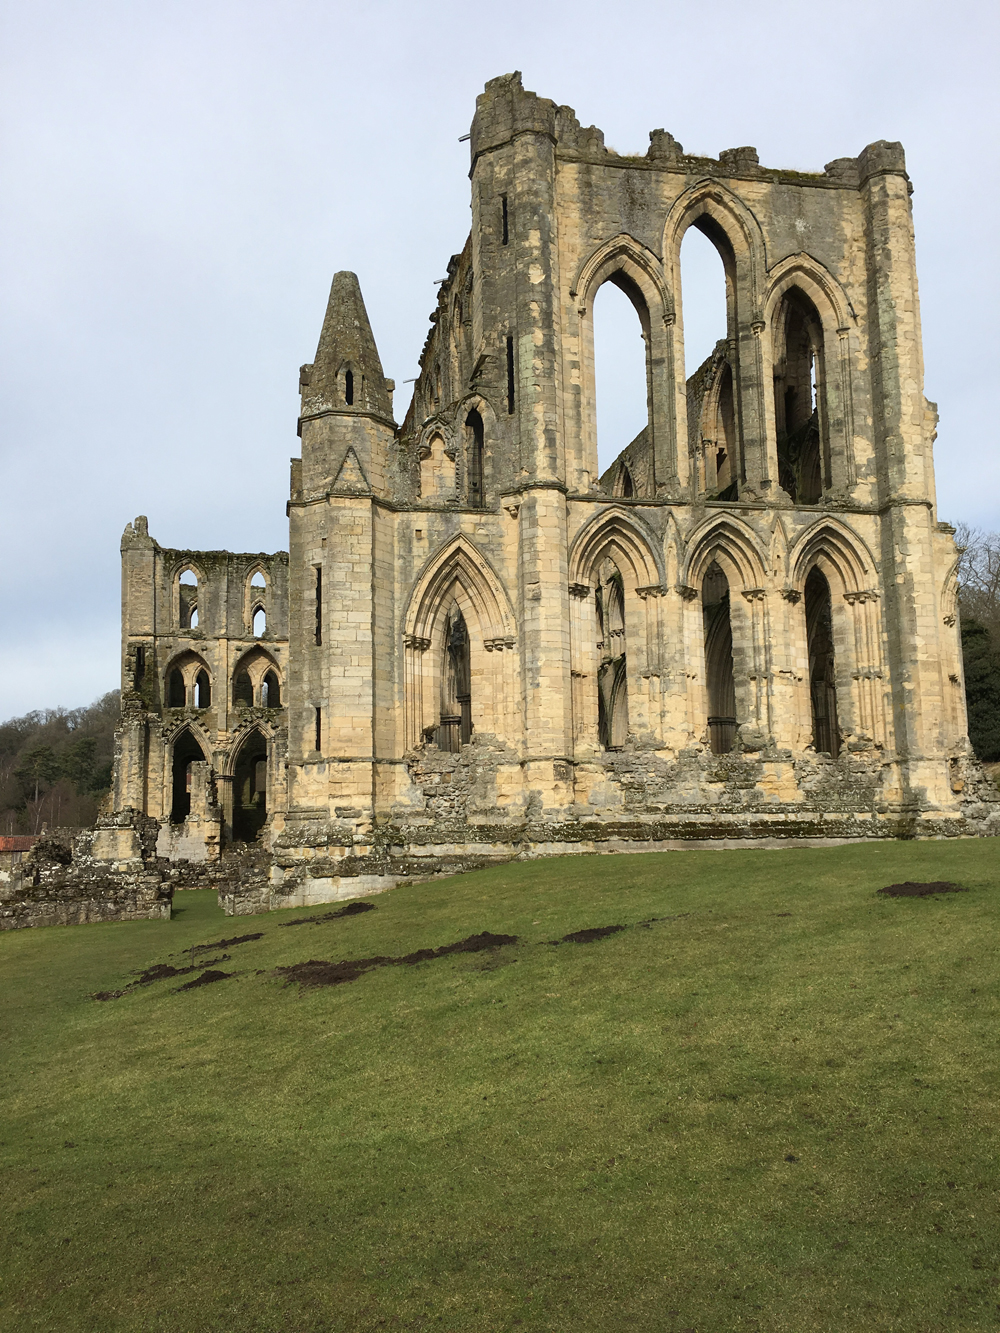 Rievaulx Abbey, a cistercian abbey near Helmsley in the North York Moors National Park